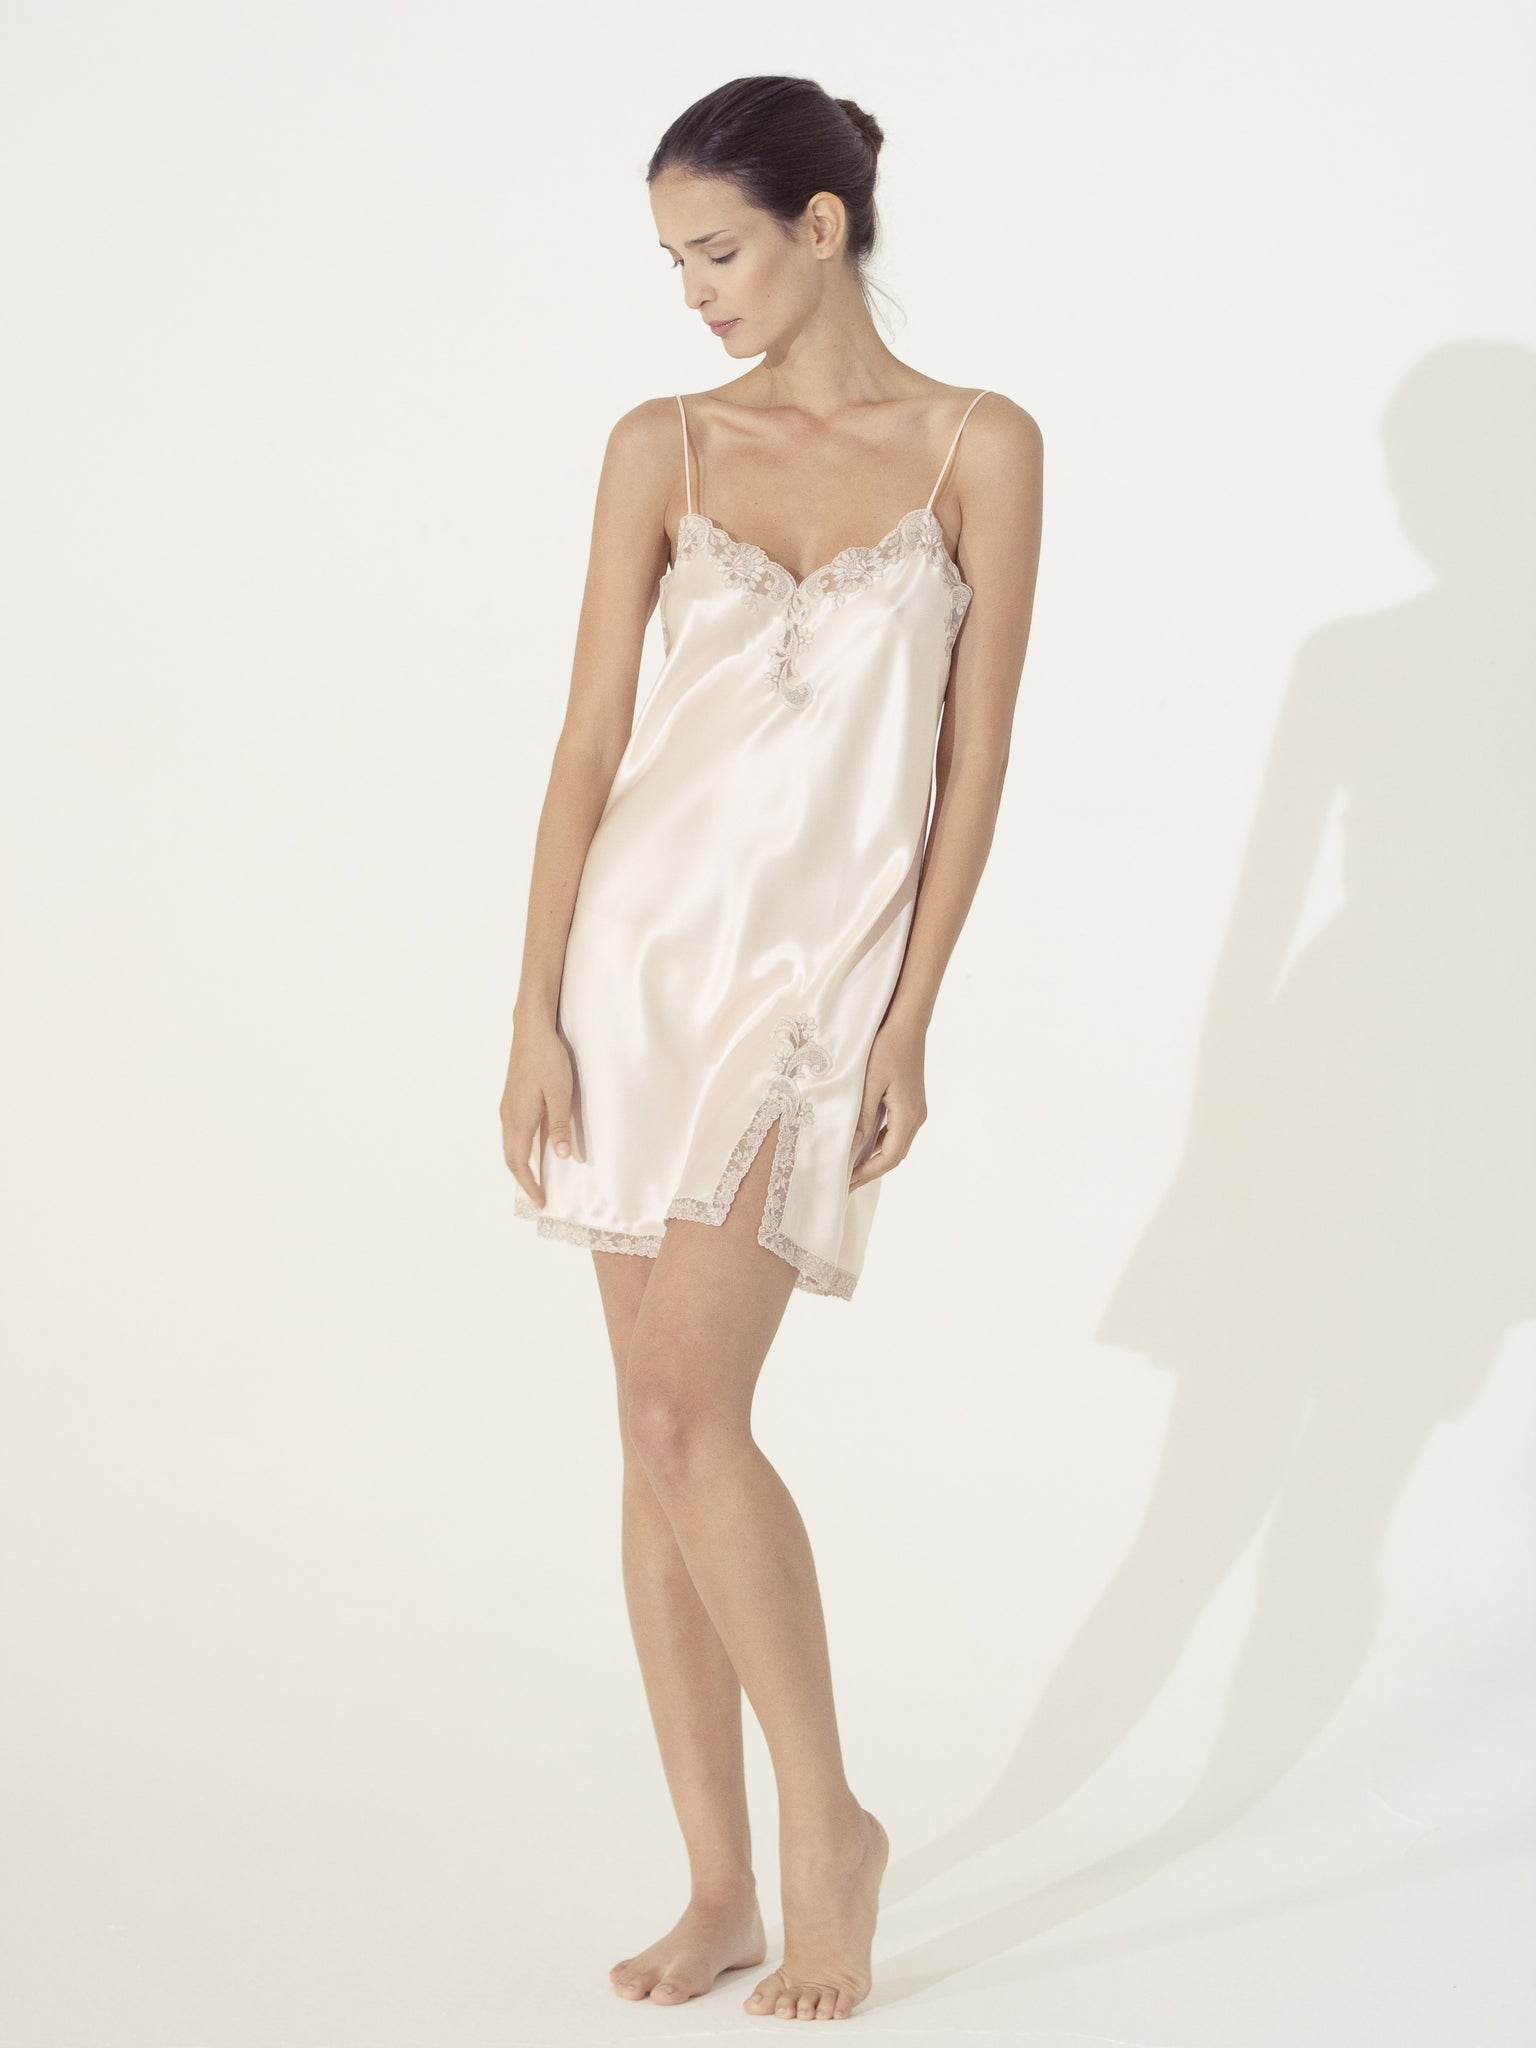 Silk Short Nightgown - Dress - italian lingerie